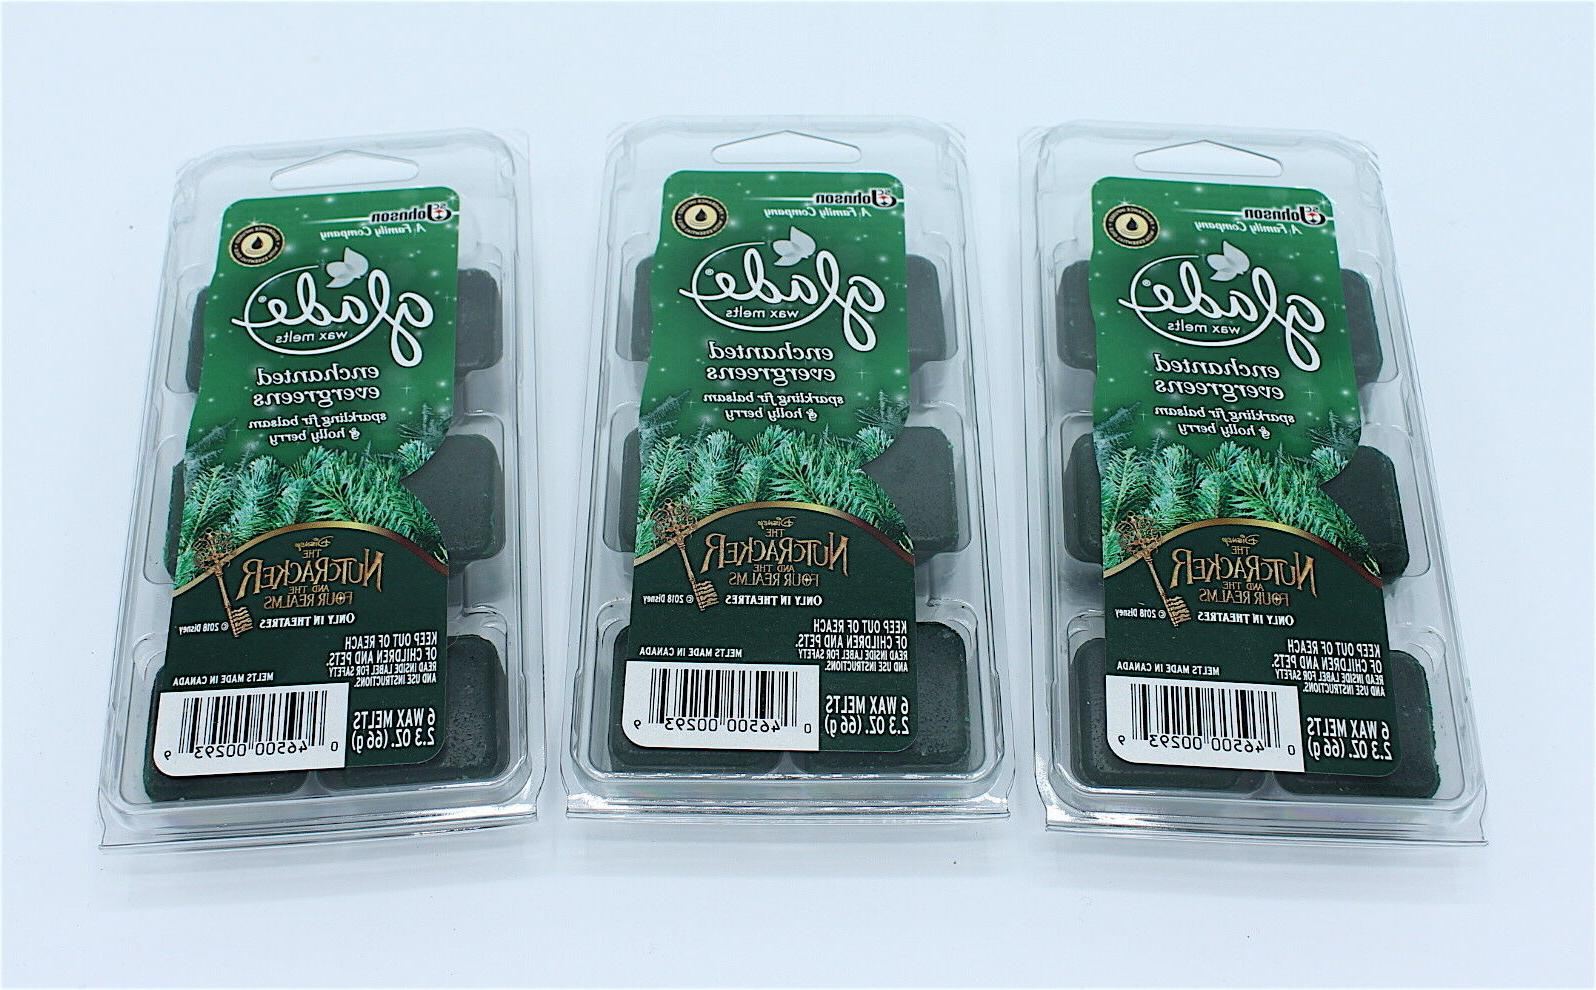 enchanted evergreens 3 packs of 6 limited